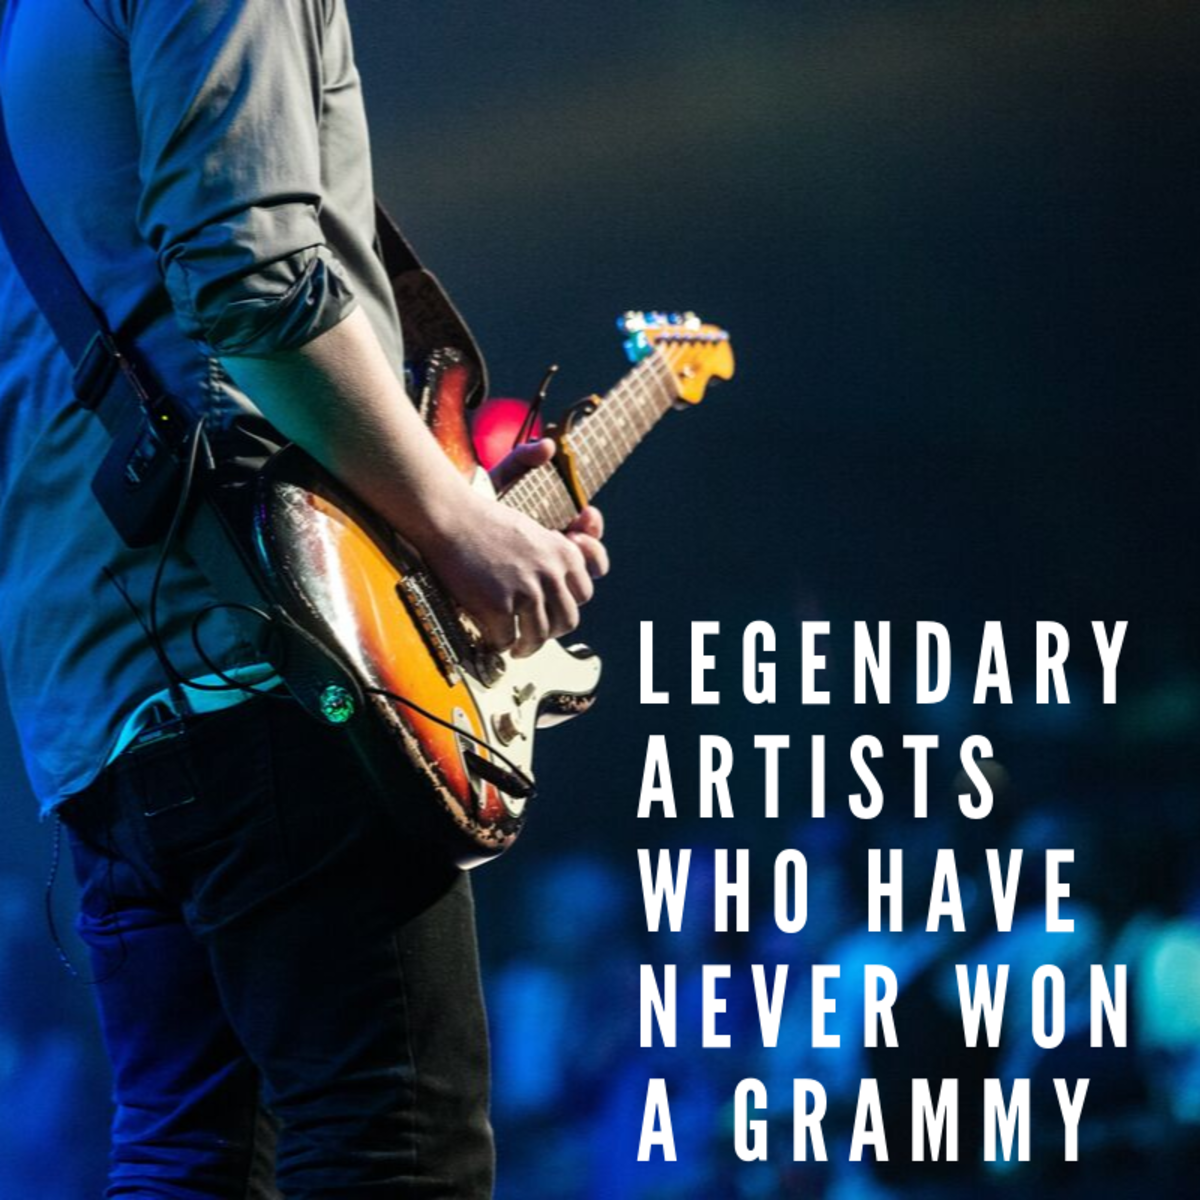 These artists have never won a Grammy Award, but their music is absolutely legendary.